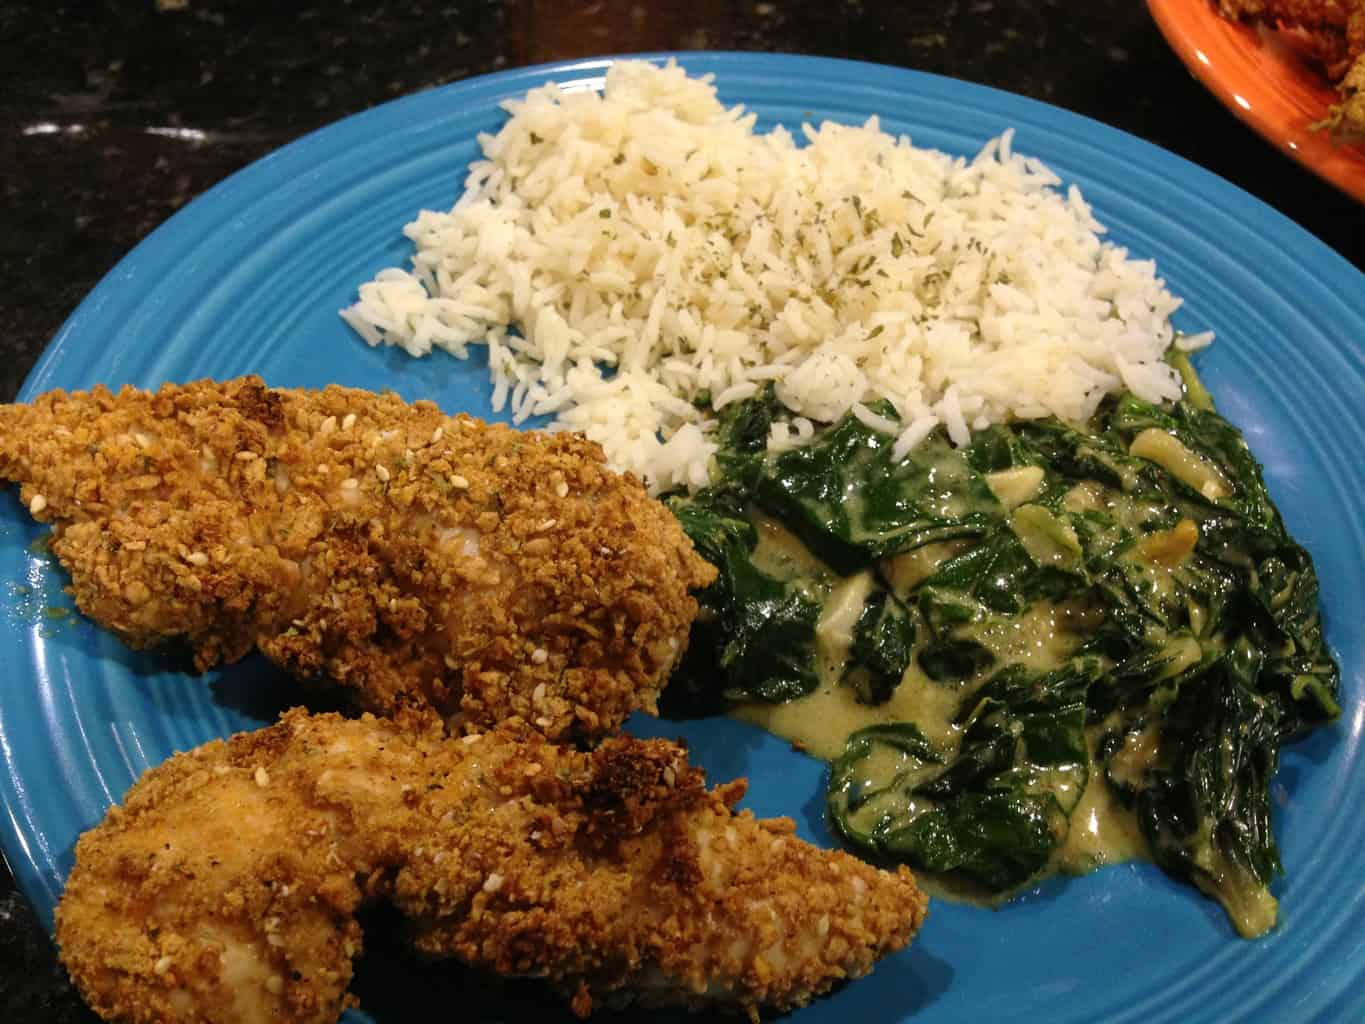 Gluten-Free Chicken Tenders with Mustard and Coconut Milk Creamed Spinach